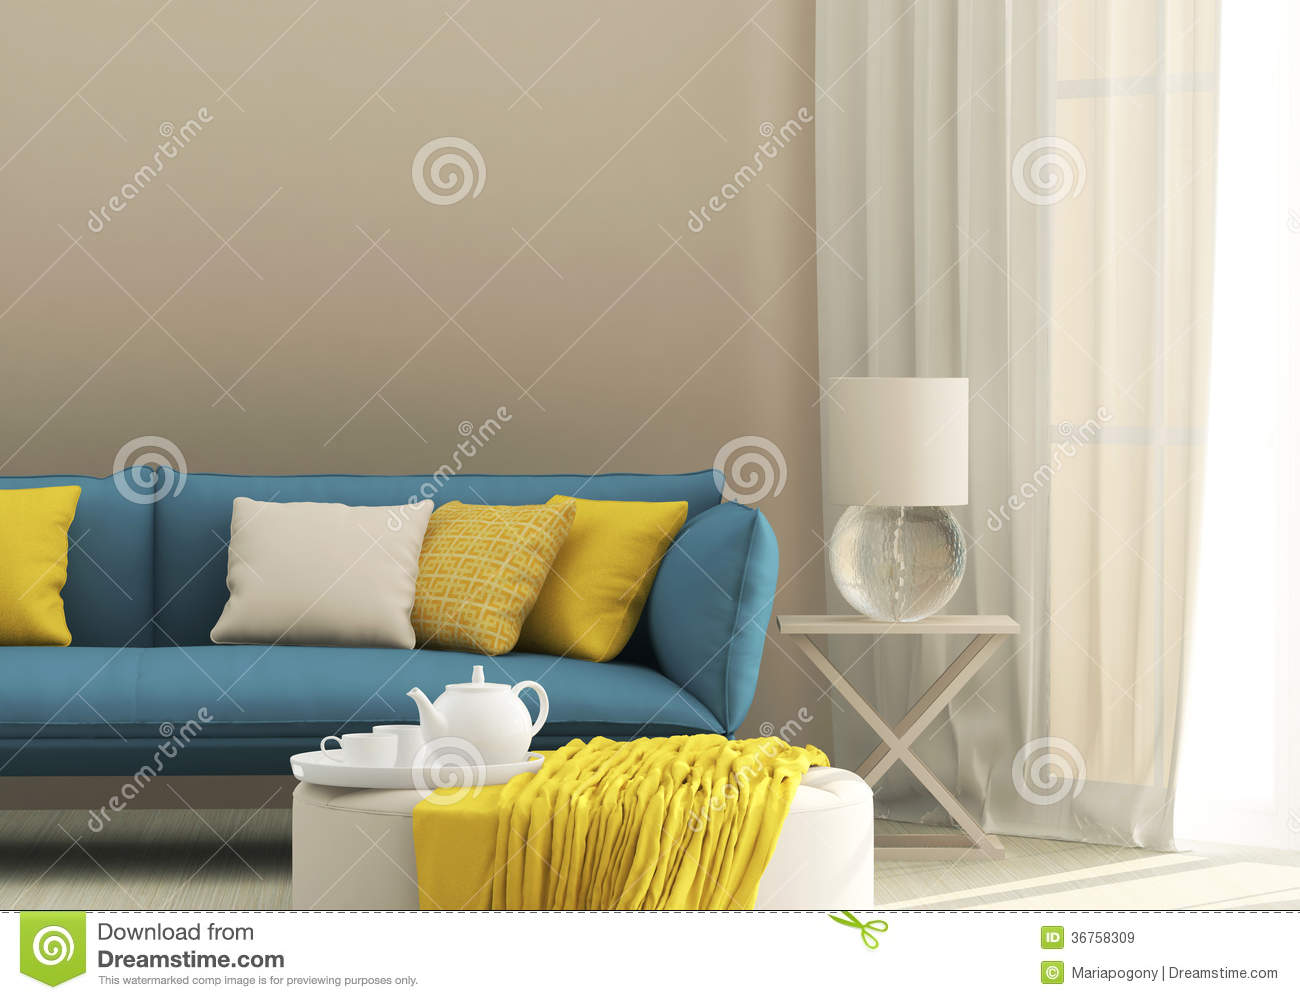 Light Interior With Blue Sofa Stock Image  Image of